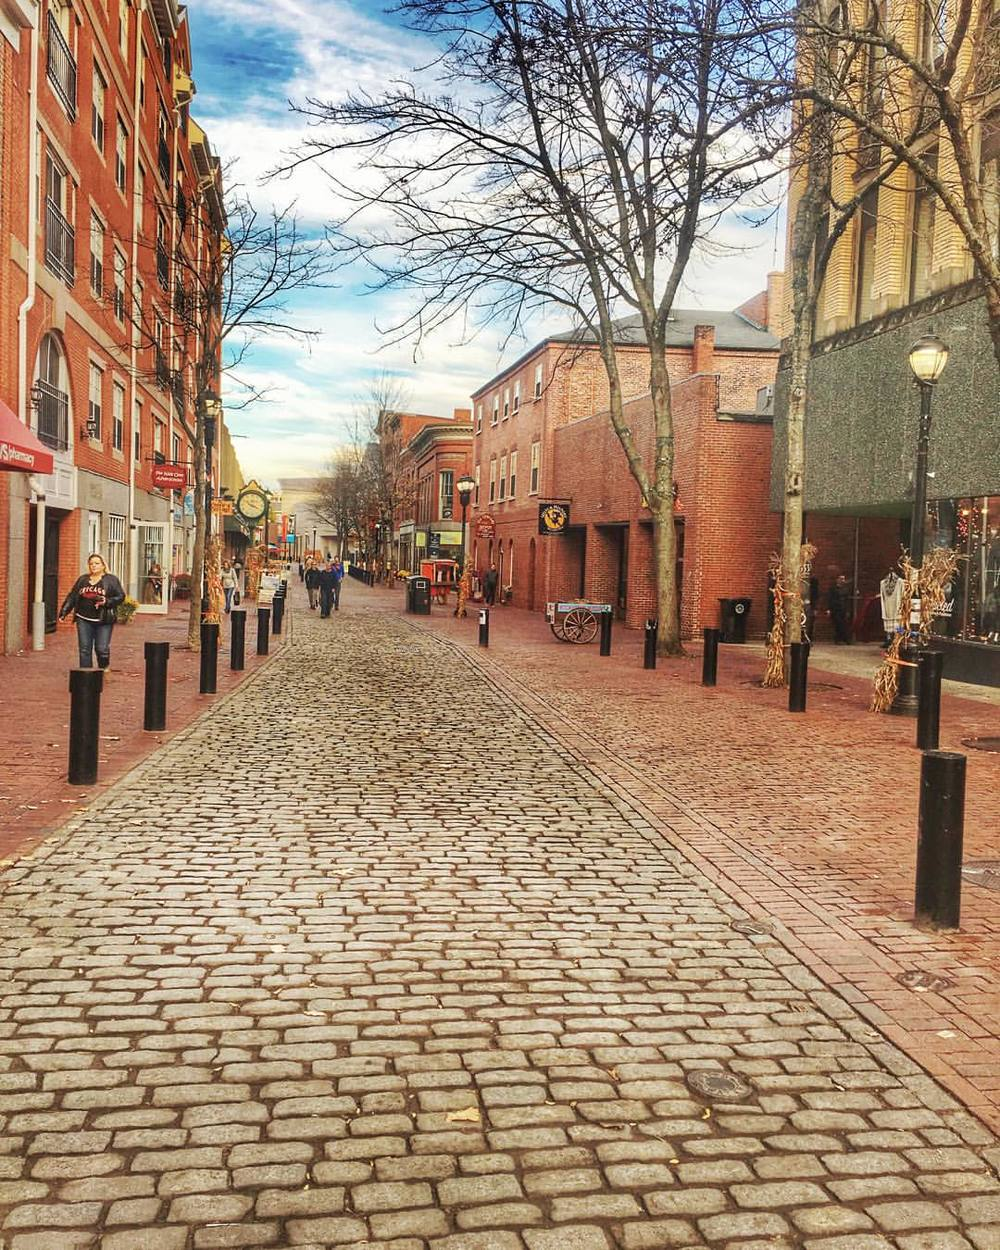 creative-salem :     What a difference 48 hours makes. #salemma where'd you all go lol #creativesalem      It looks like peace and quiet has returned to Salem, MA, post-Halloween. Seems like heaven to an introvert like me.  A.M.